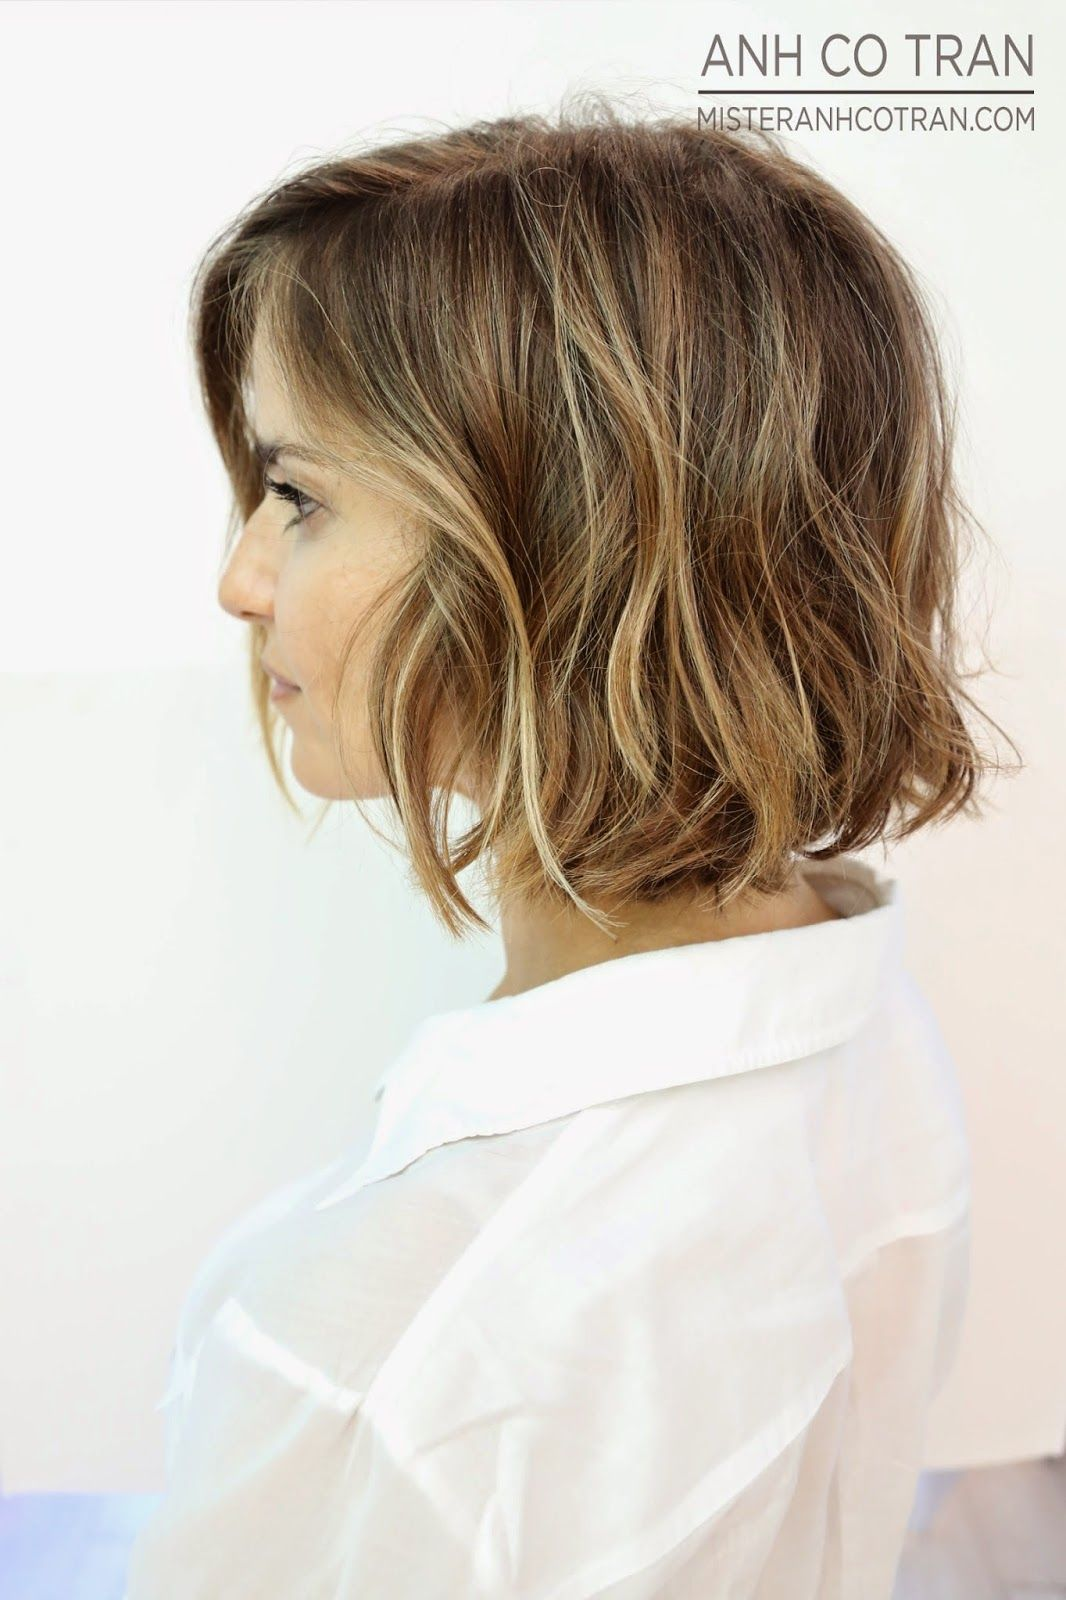 Mister Anhcotran Undone Beautiful Lived In Hair Hair Styles Short Hair Styles Short Hair Balayage